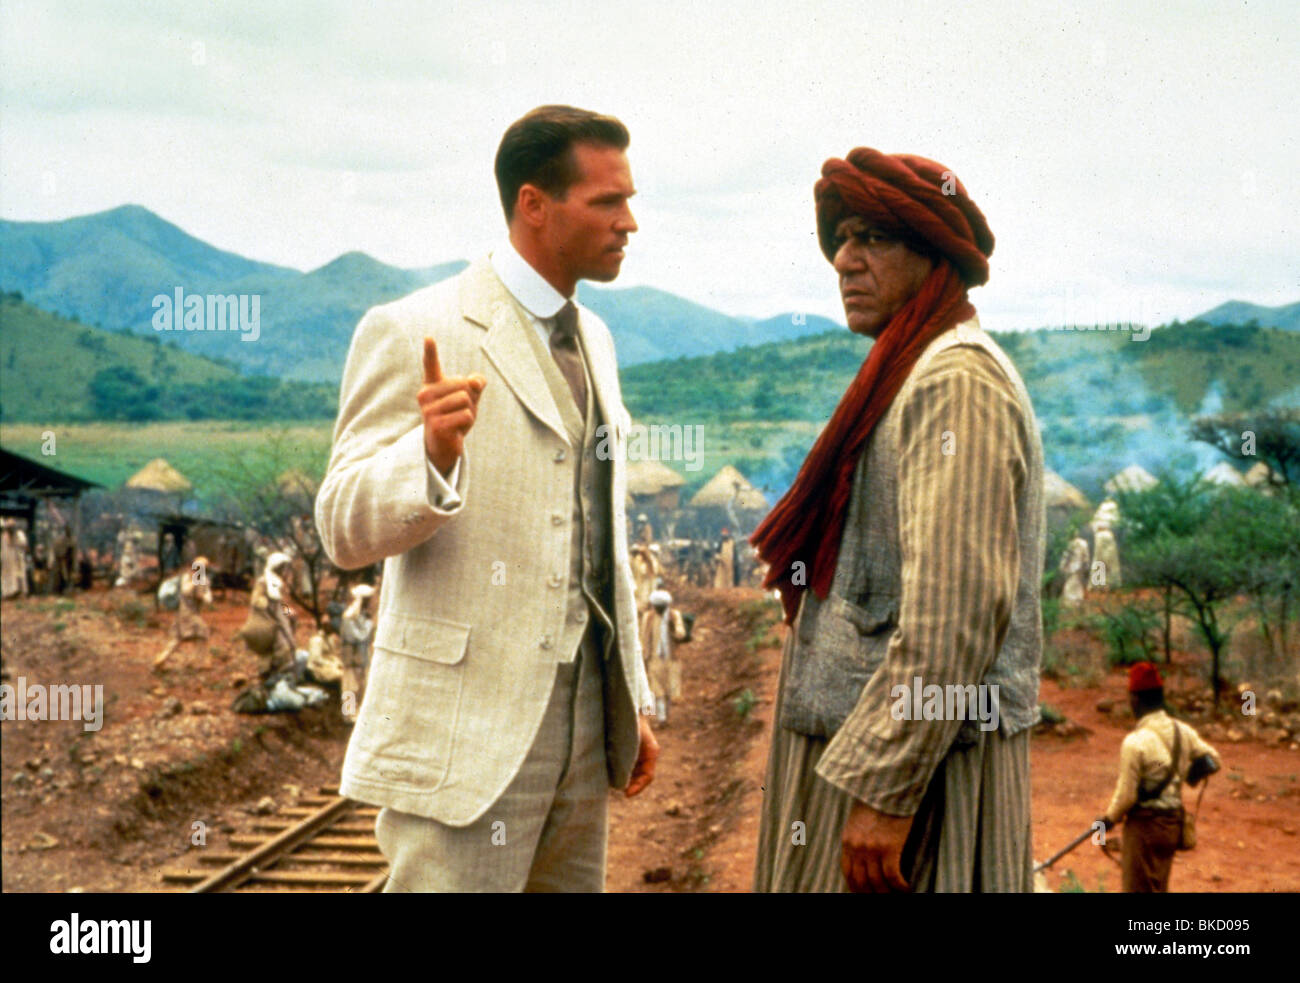 THE GHOST AND THE DARKNESS (1996) VAL KILMER, OM PURI GATD 031 - Stock Image